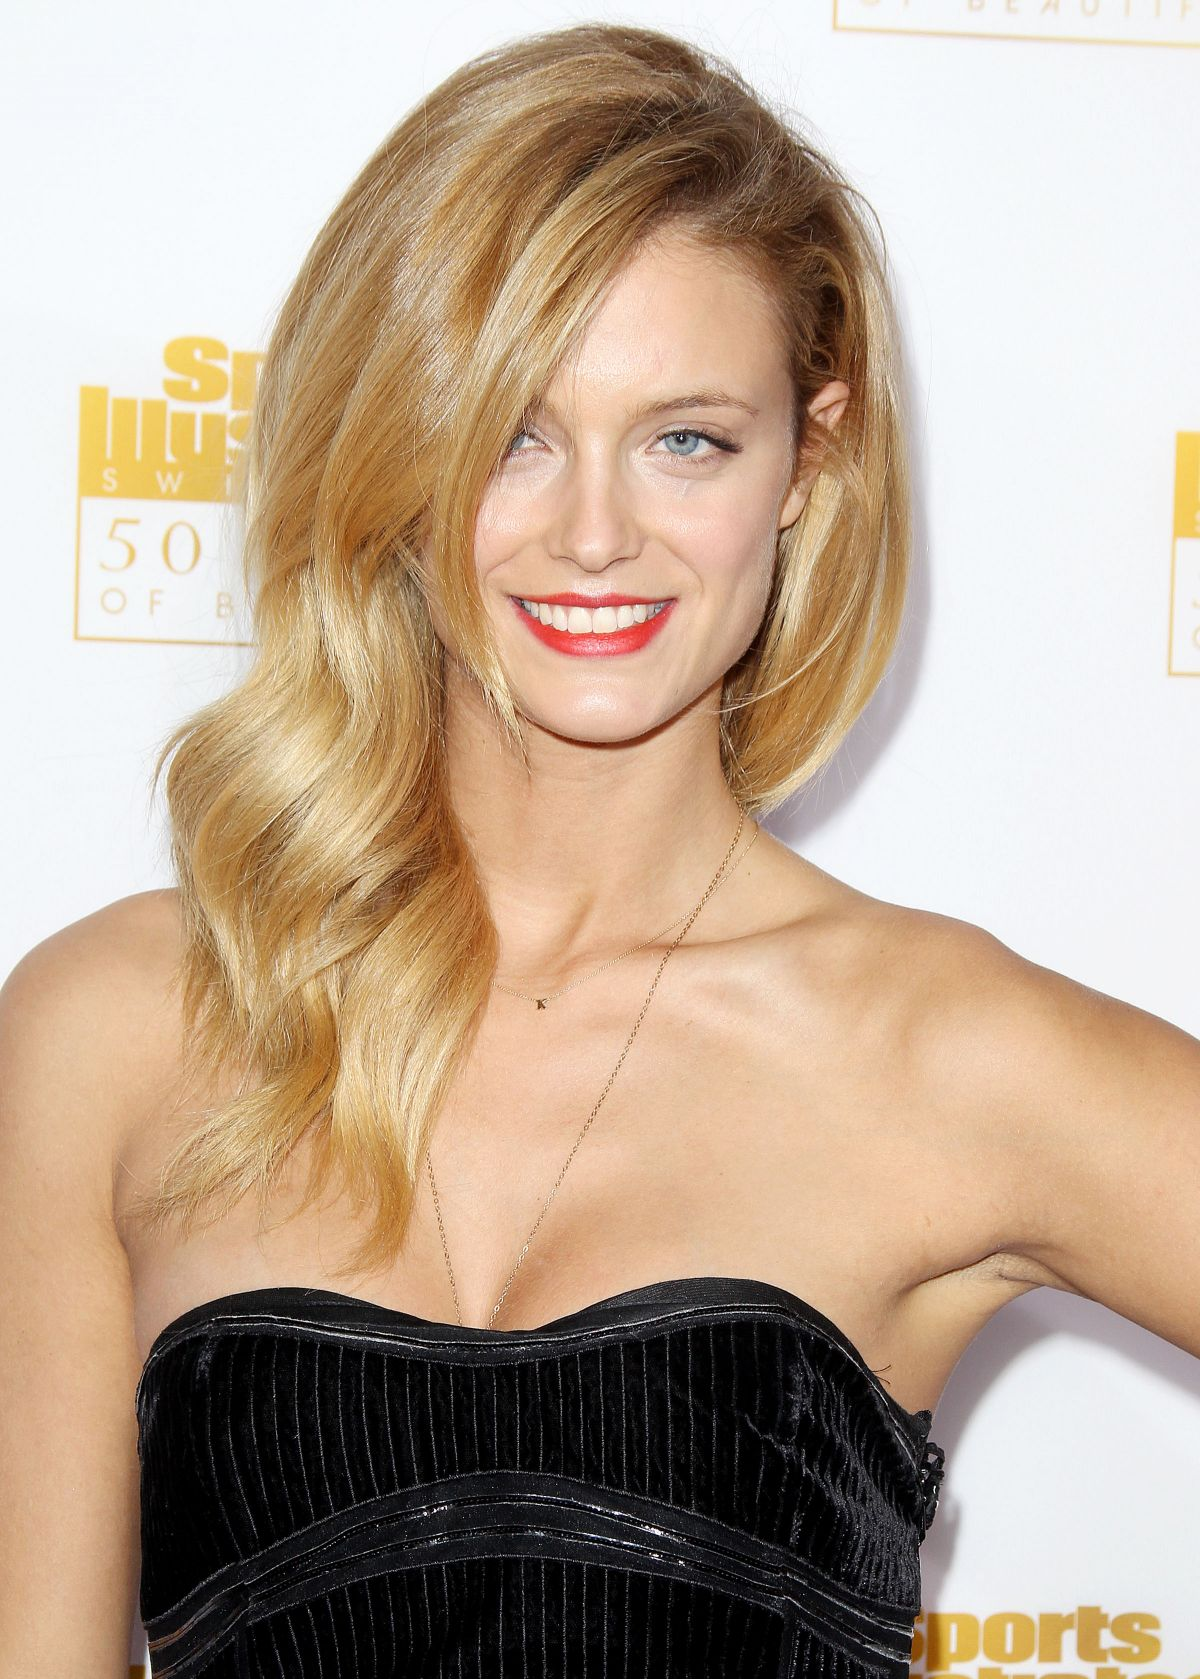 Kate Bock At 50th Anniversary Of The SI Swimsuit Issue Celebration In Hollywood